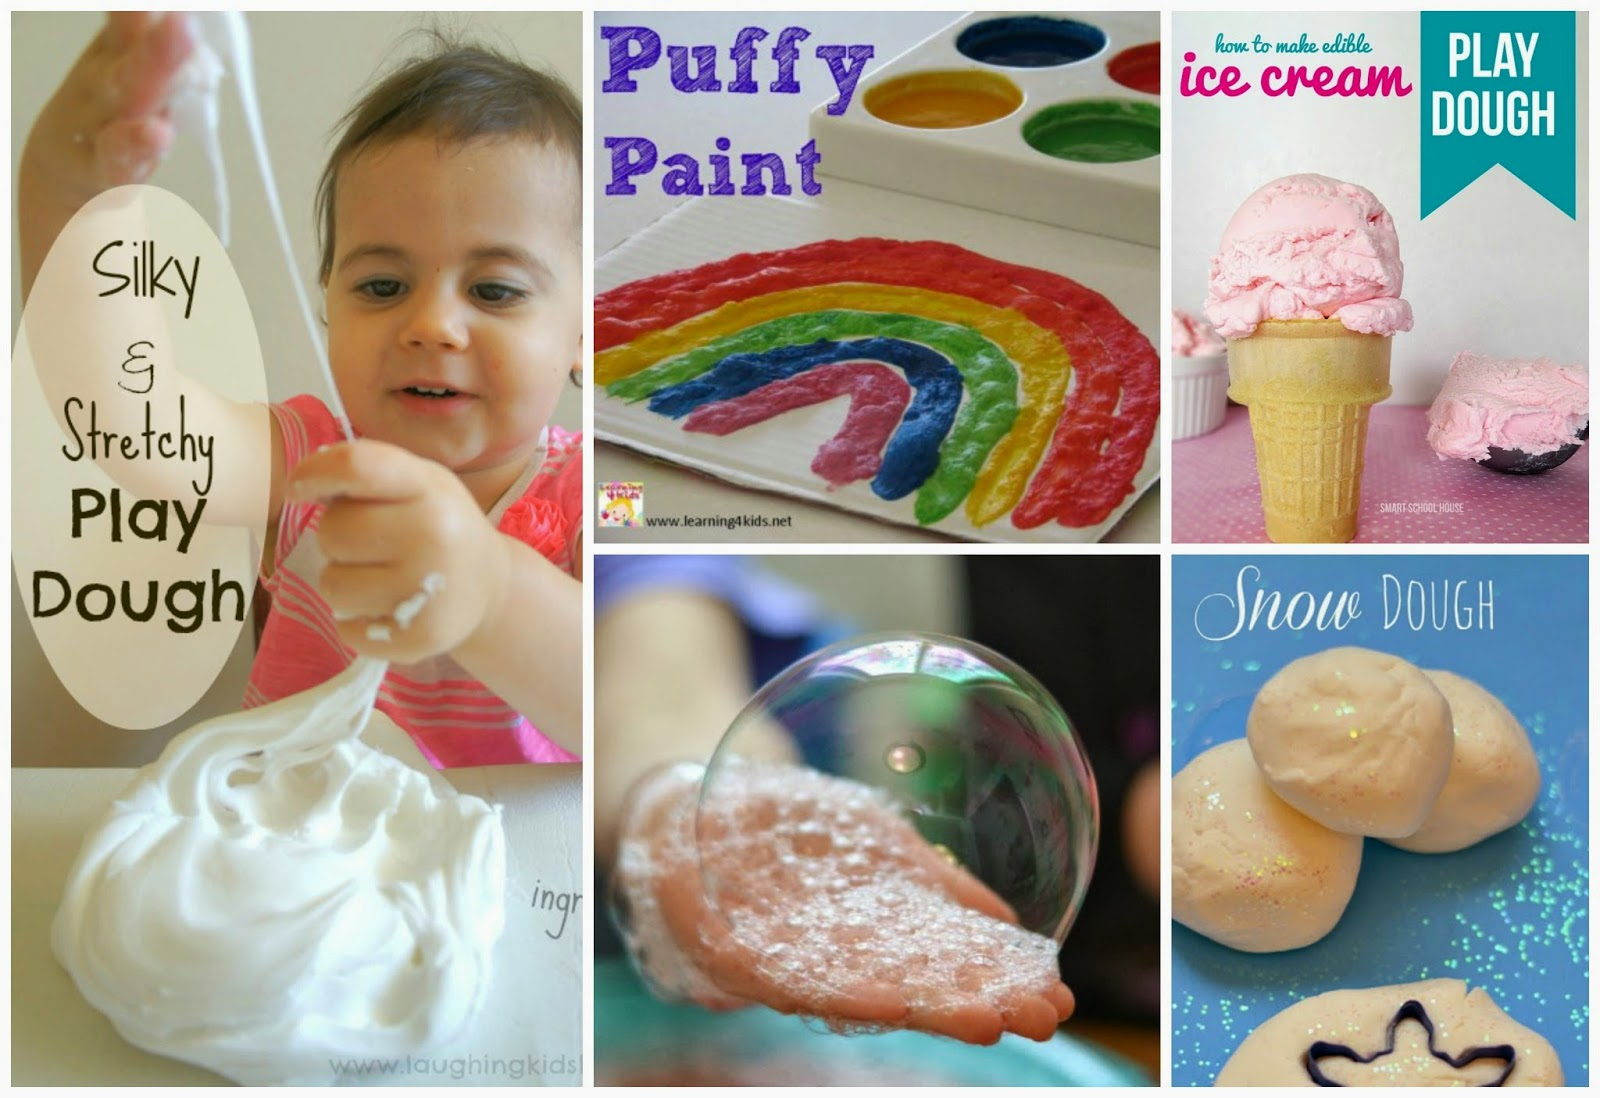 Amazing play recipes for kids